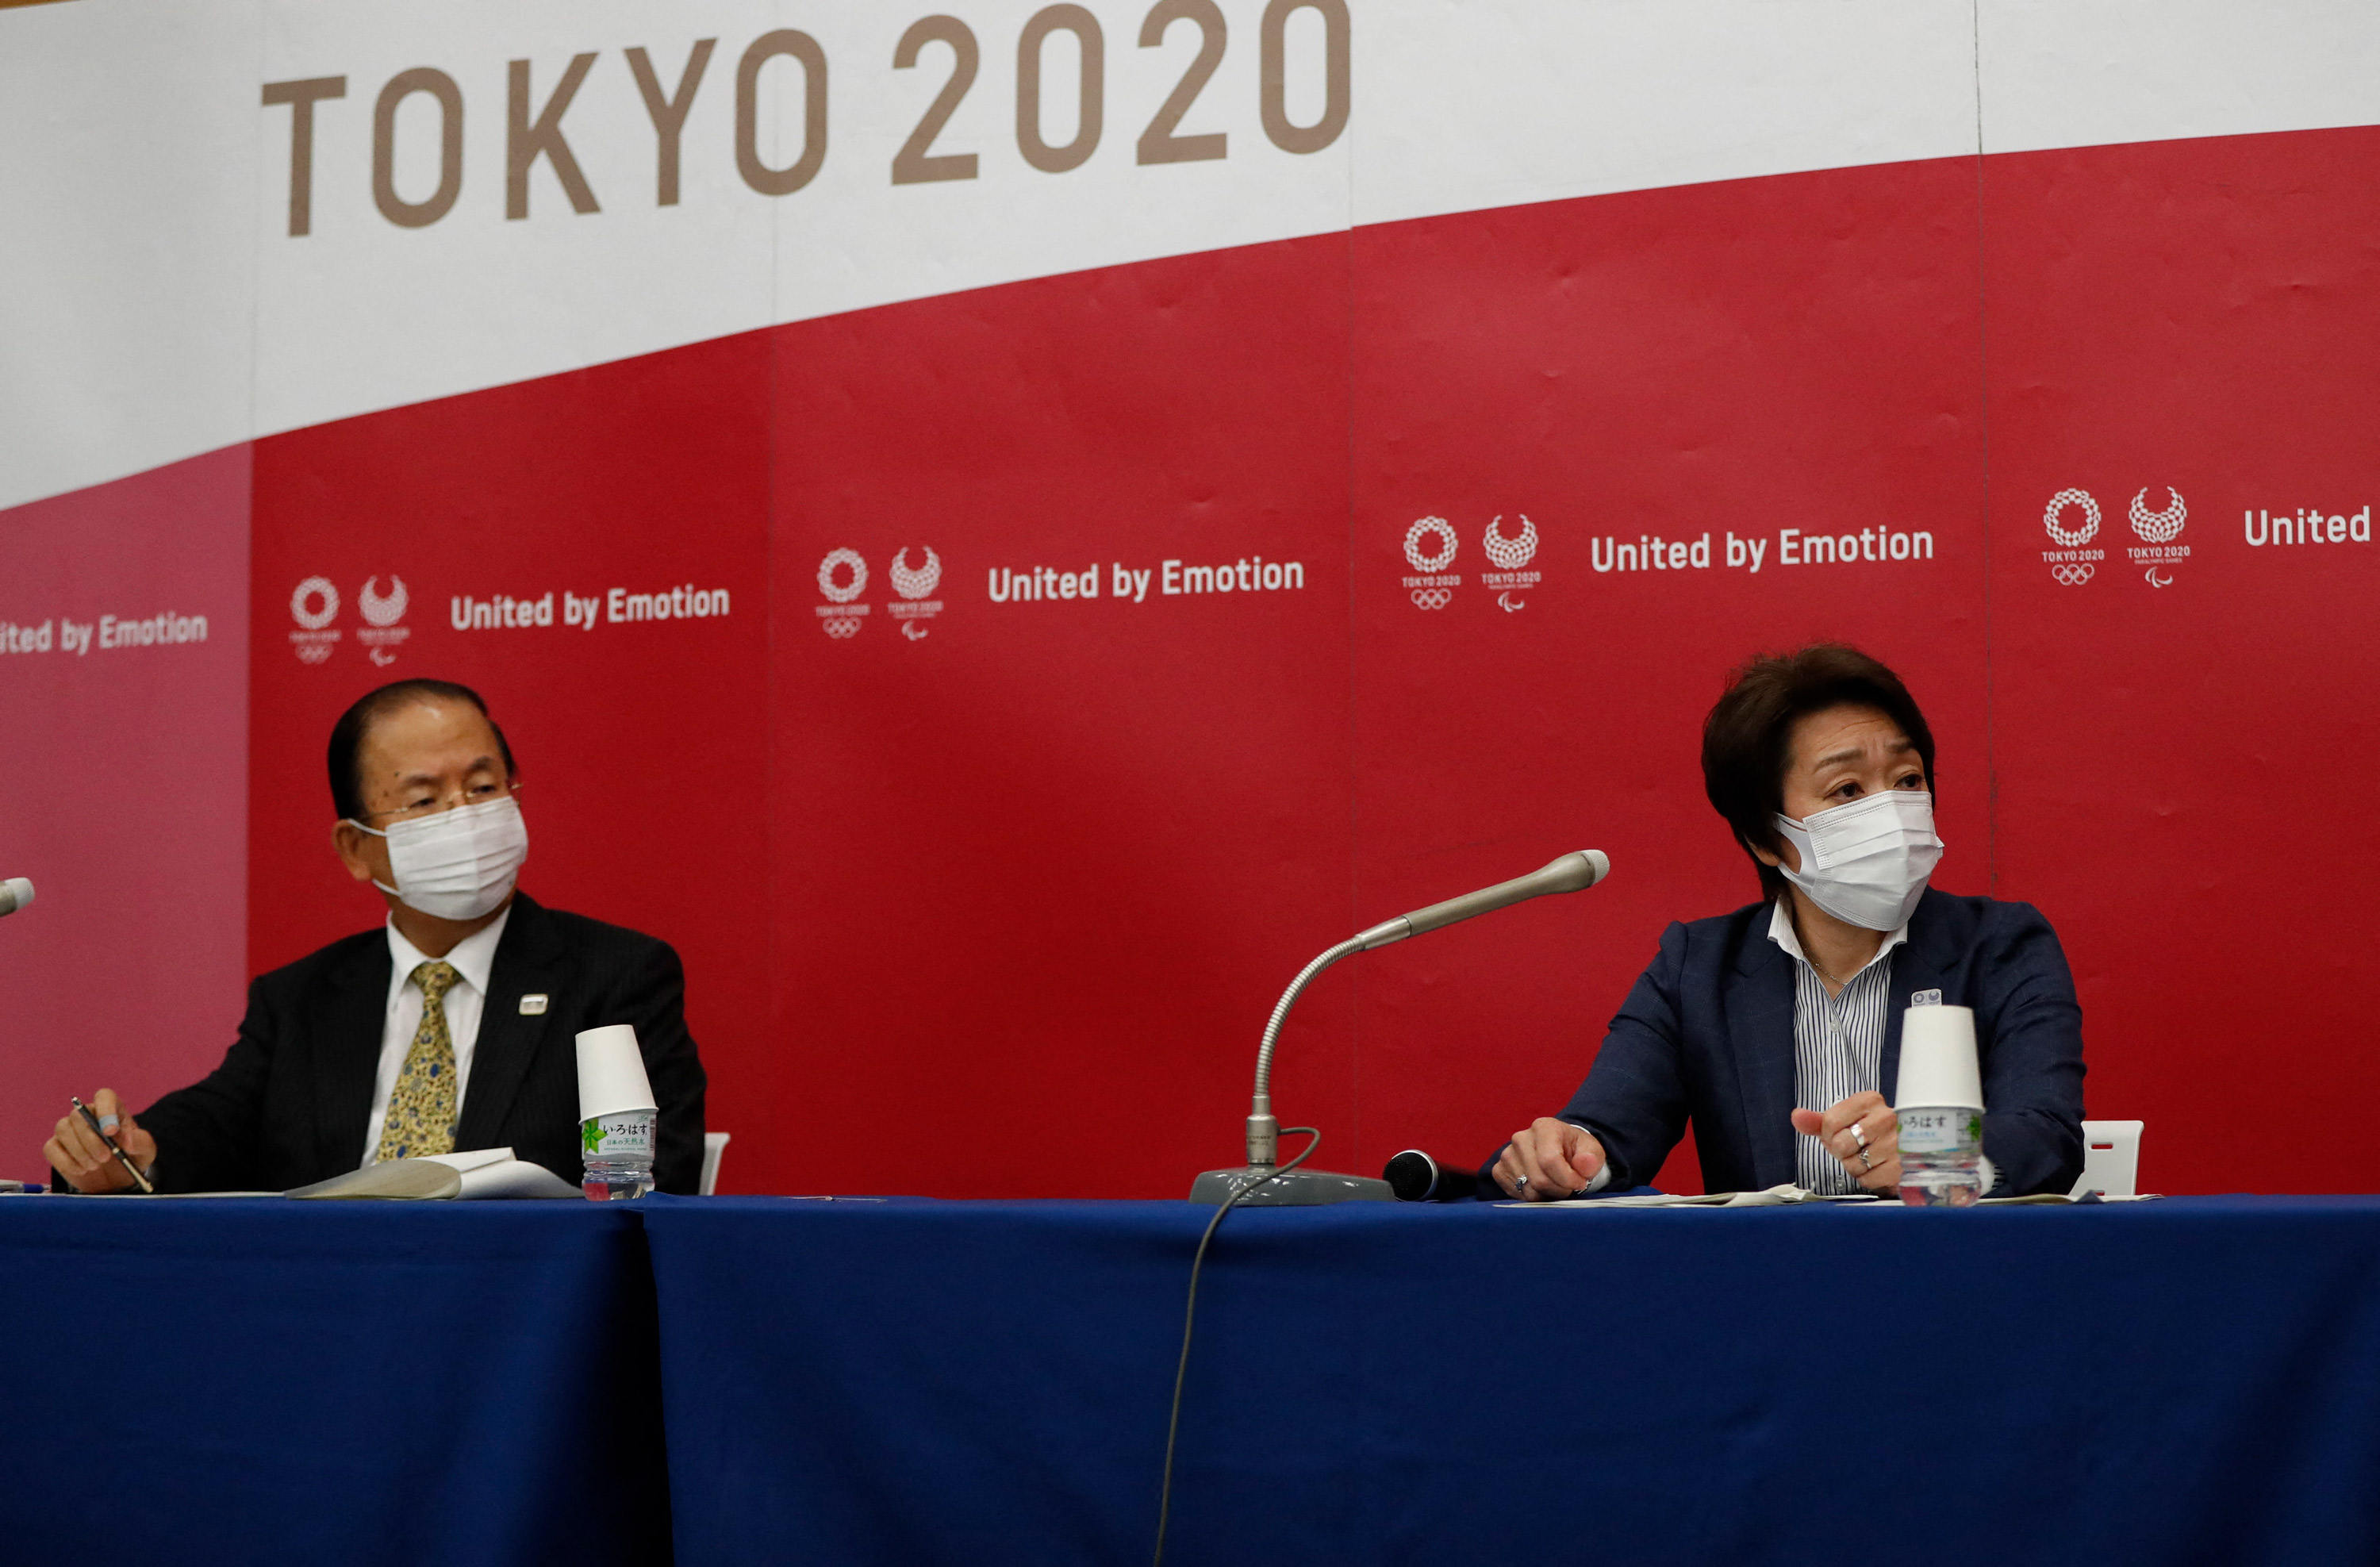 Tokyo 2020 Olympics Organising Committee president Seiko Hashimoto, right, and CEO Toshiro Muto attend a news conference in Tokyo on June 23.